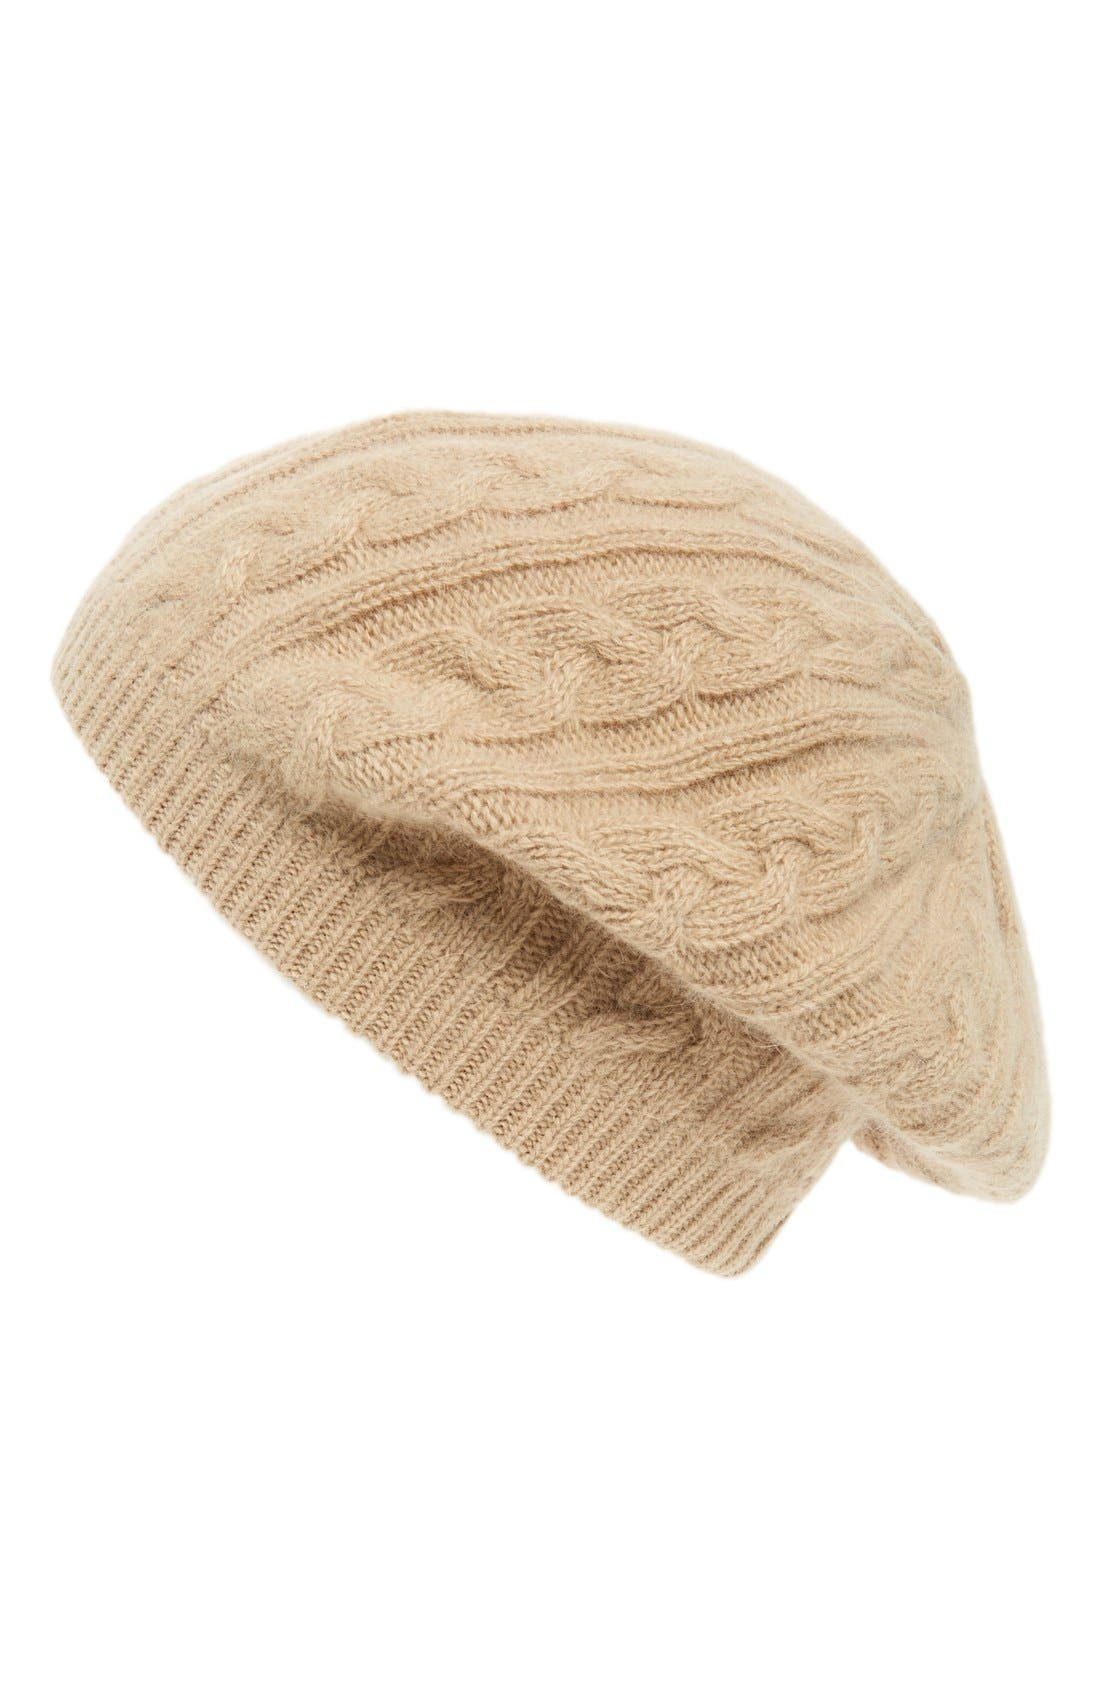 Main Image - Sole Society Cable Knit Beret